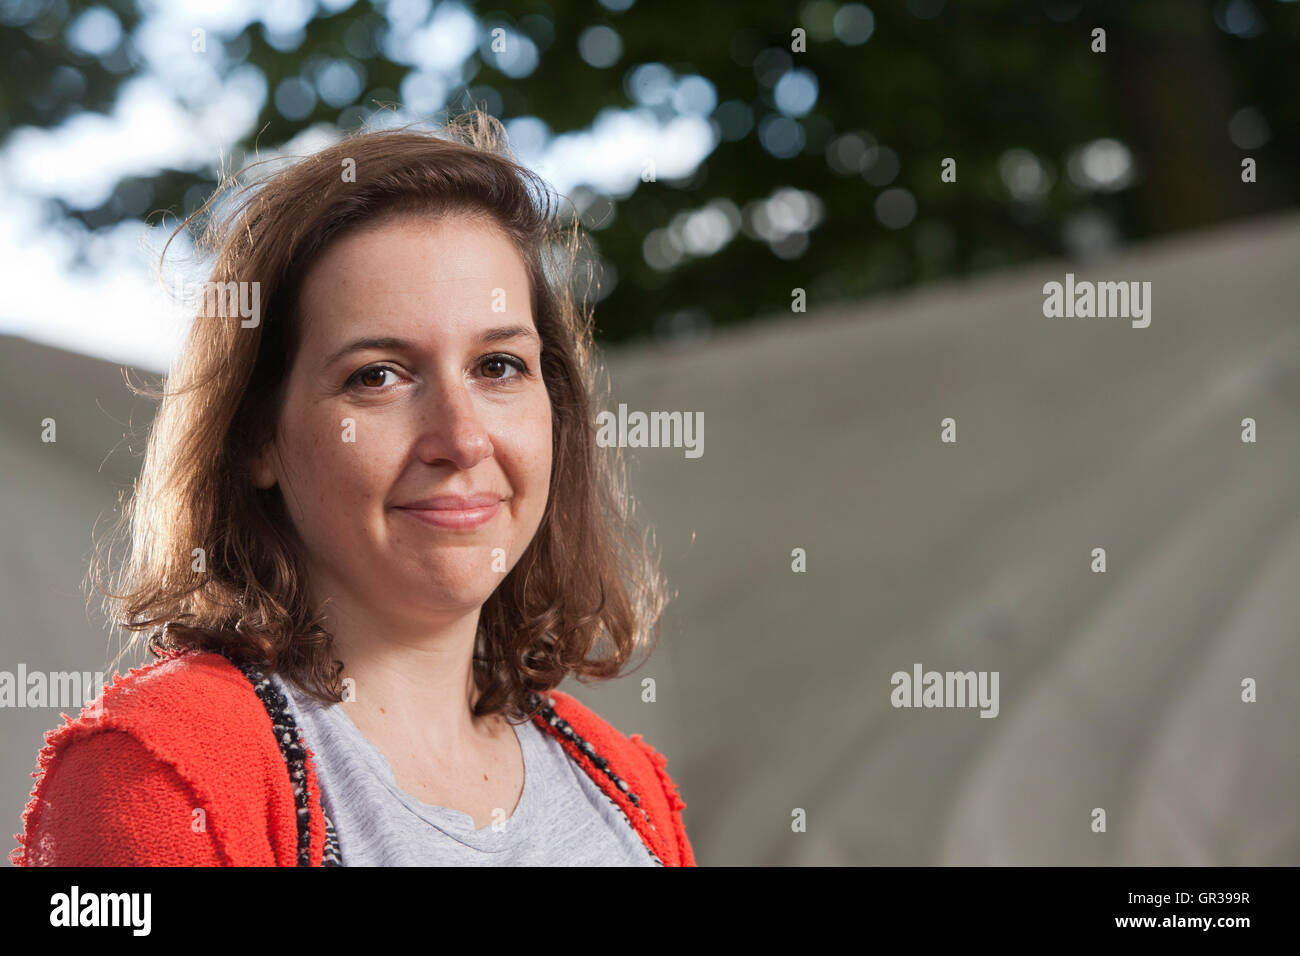 Hadley Clare Freeman, the American journalist and feature writer, at the Edinburgh International Book Festival. - Stock Image